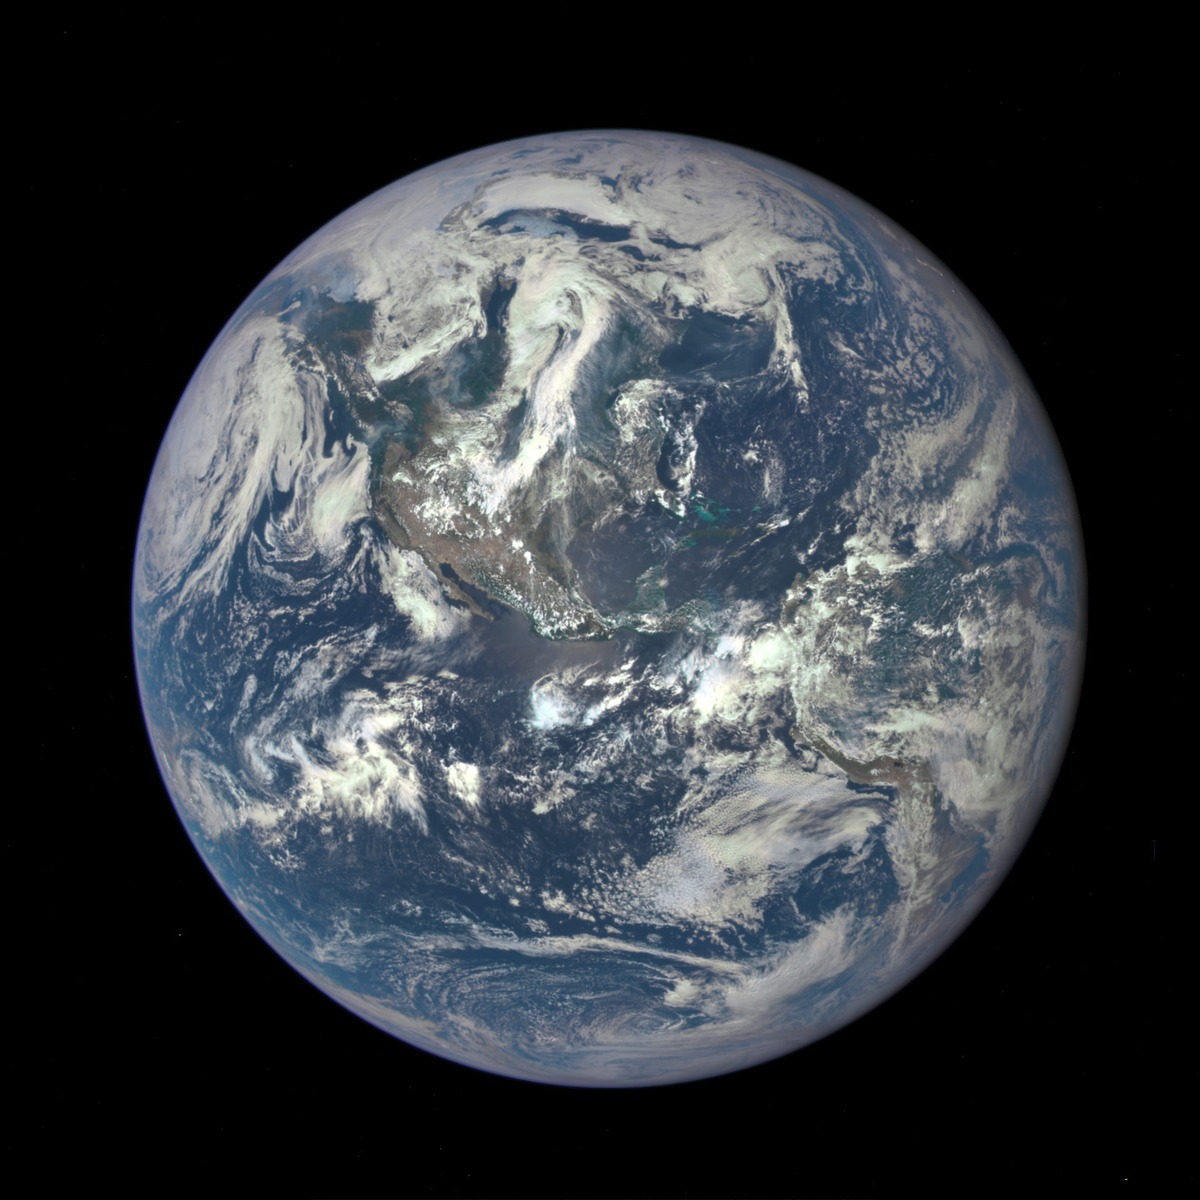 NASA camera takes 'blue marble' photo of Earth from 1 million miles away